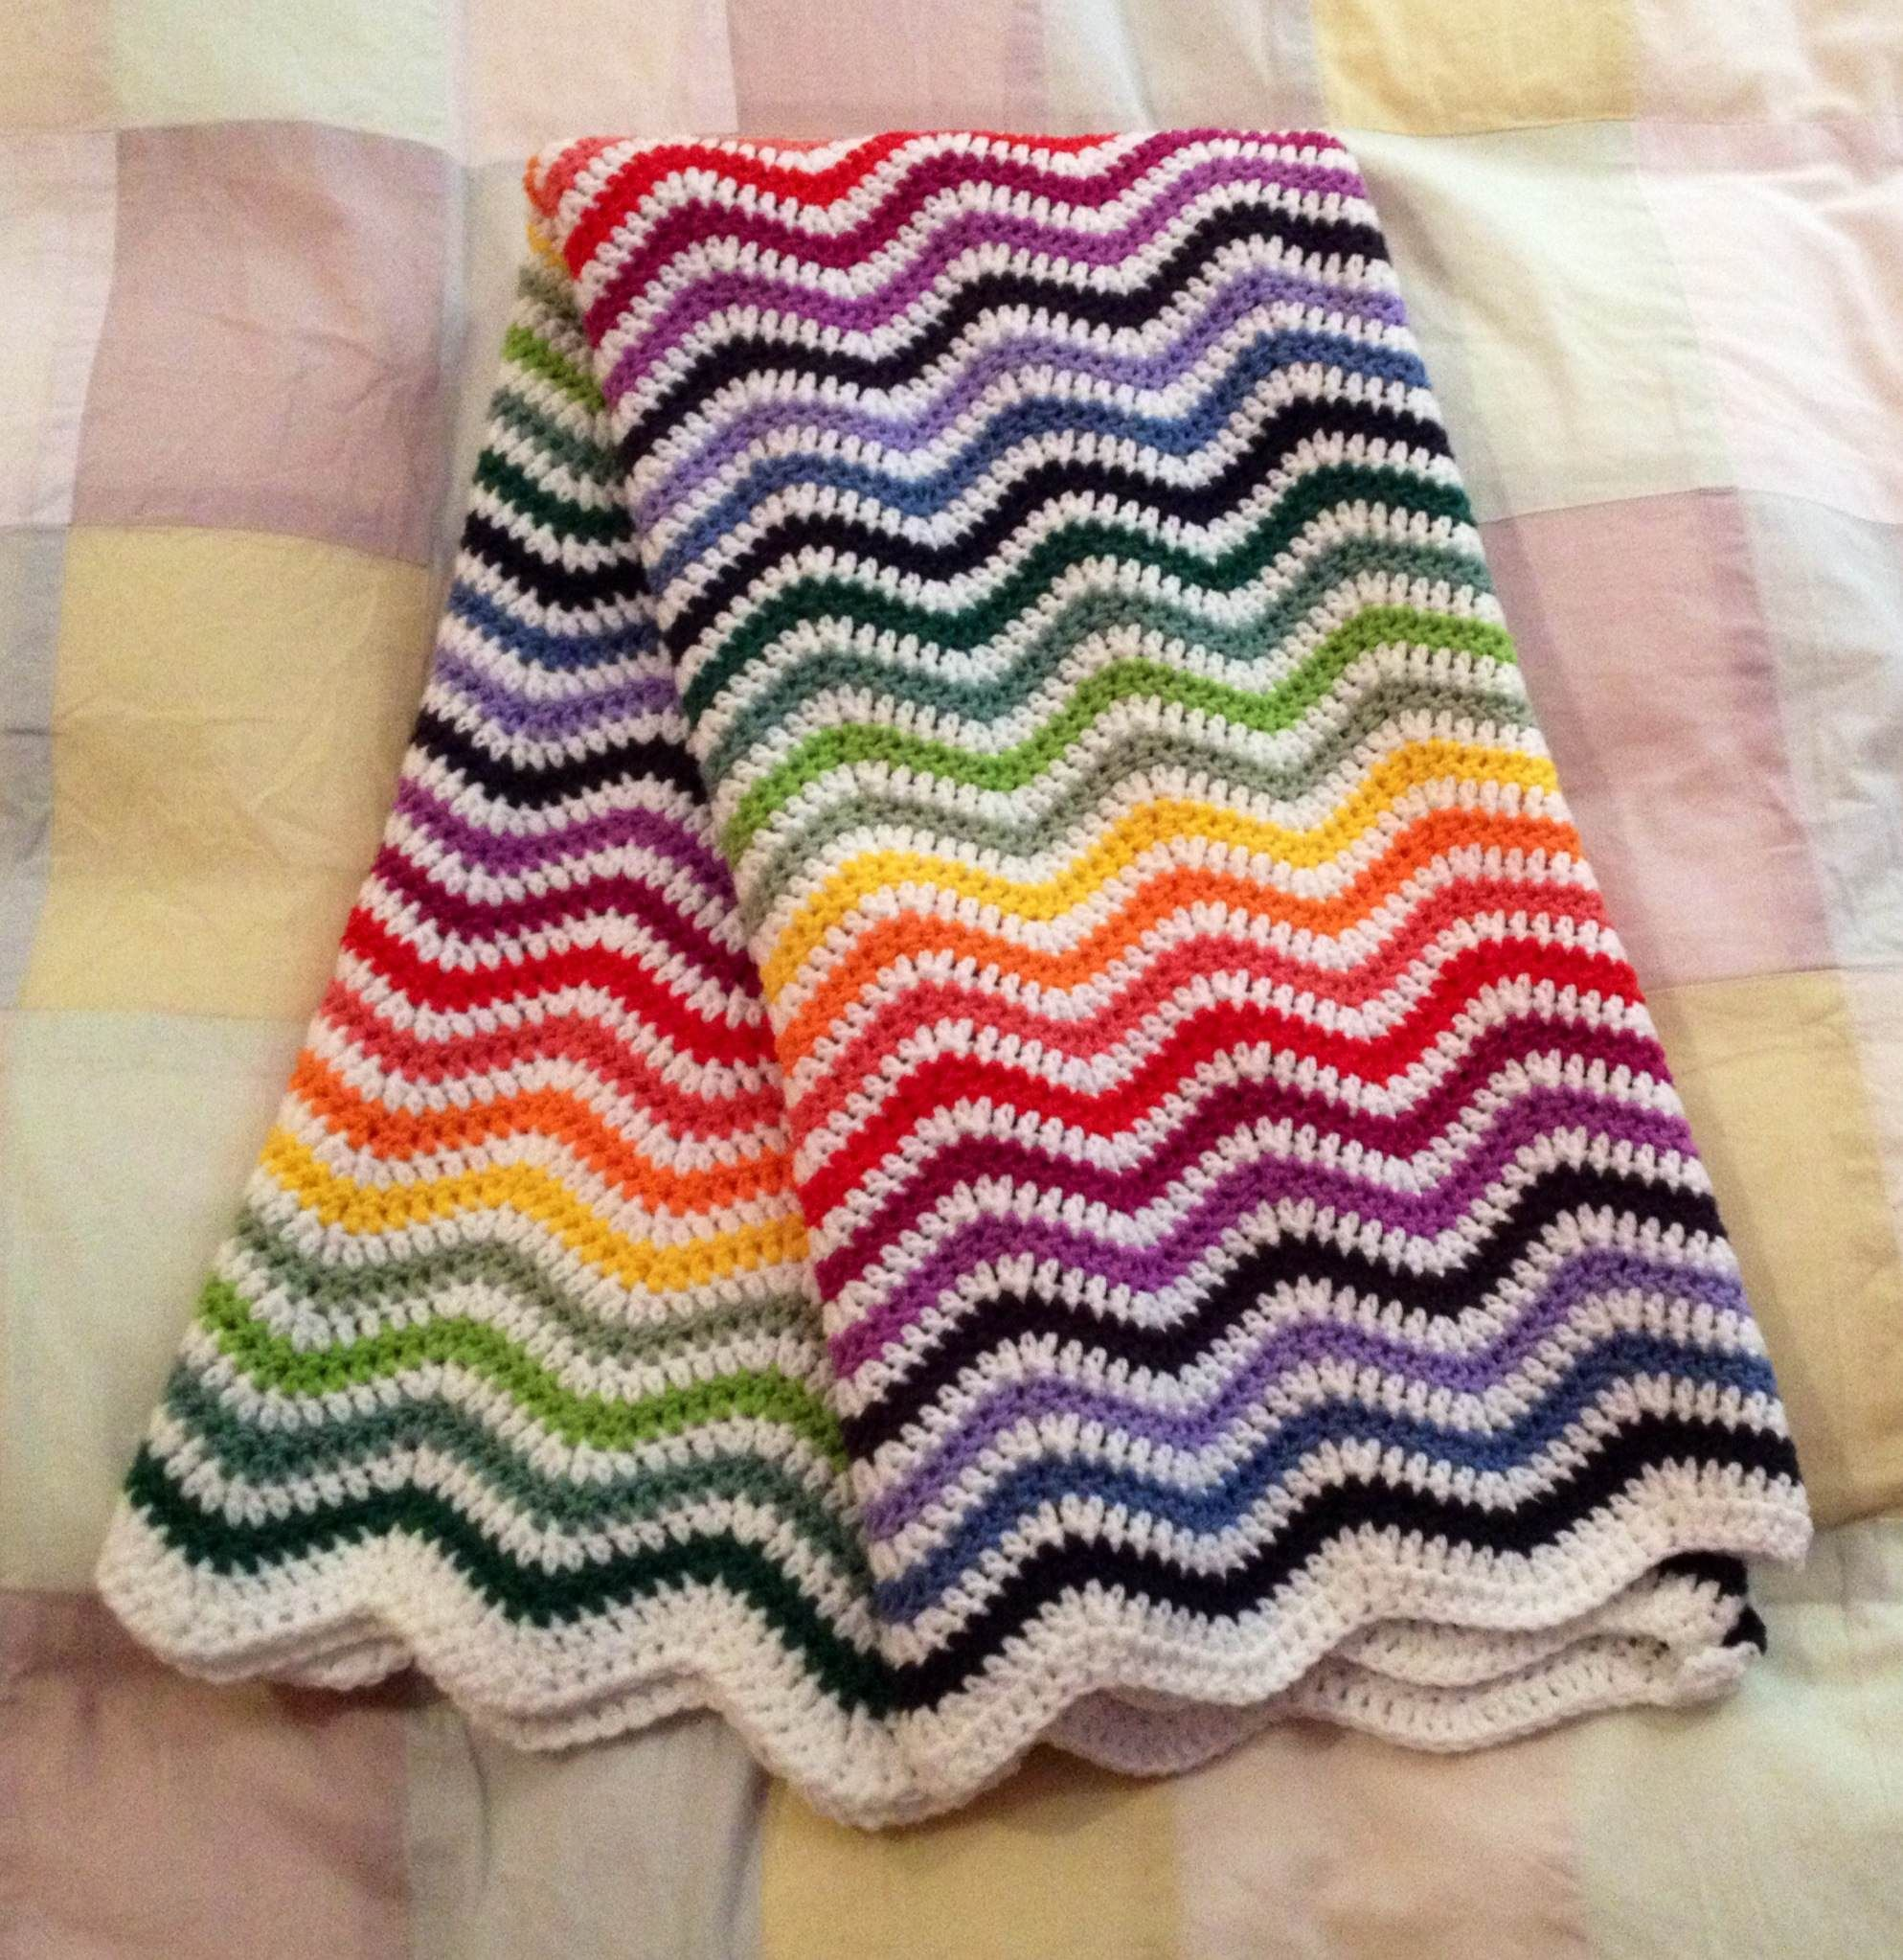 Colourful crochet ripple blanket using the pattern by Lucy@Attic24 ...